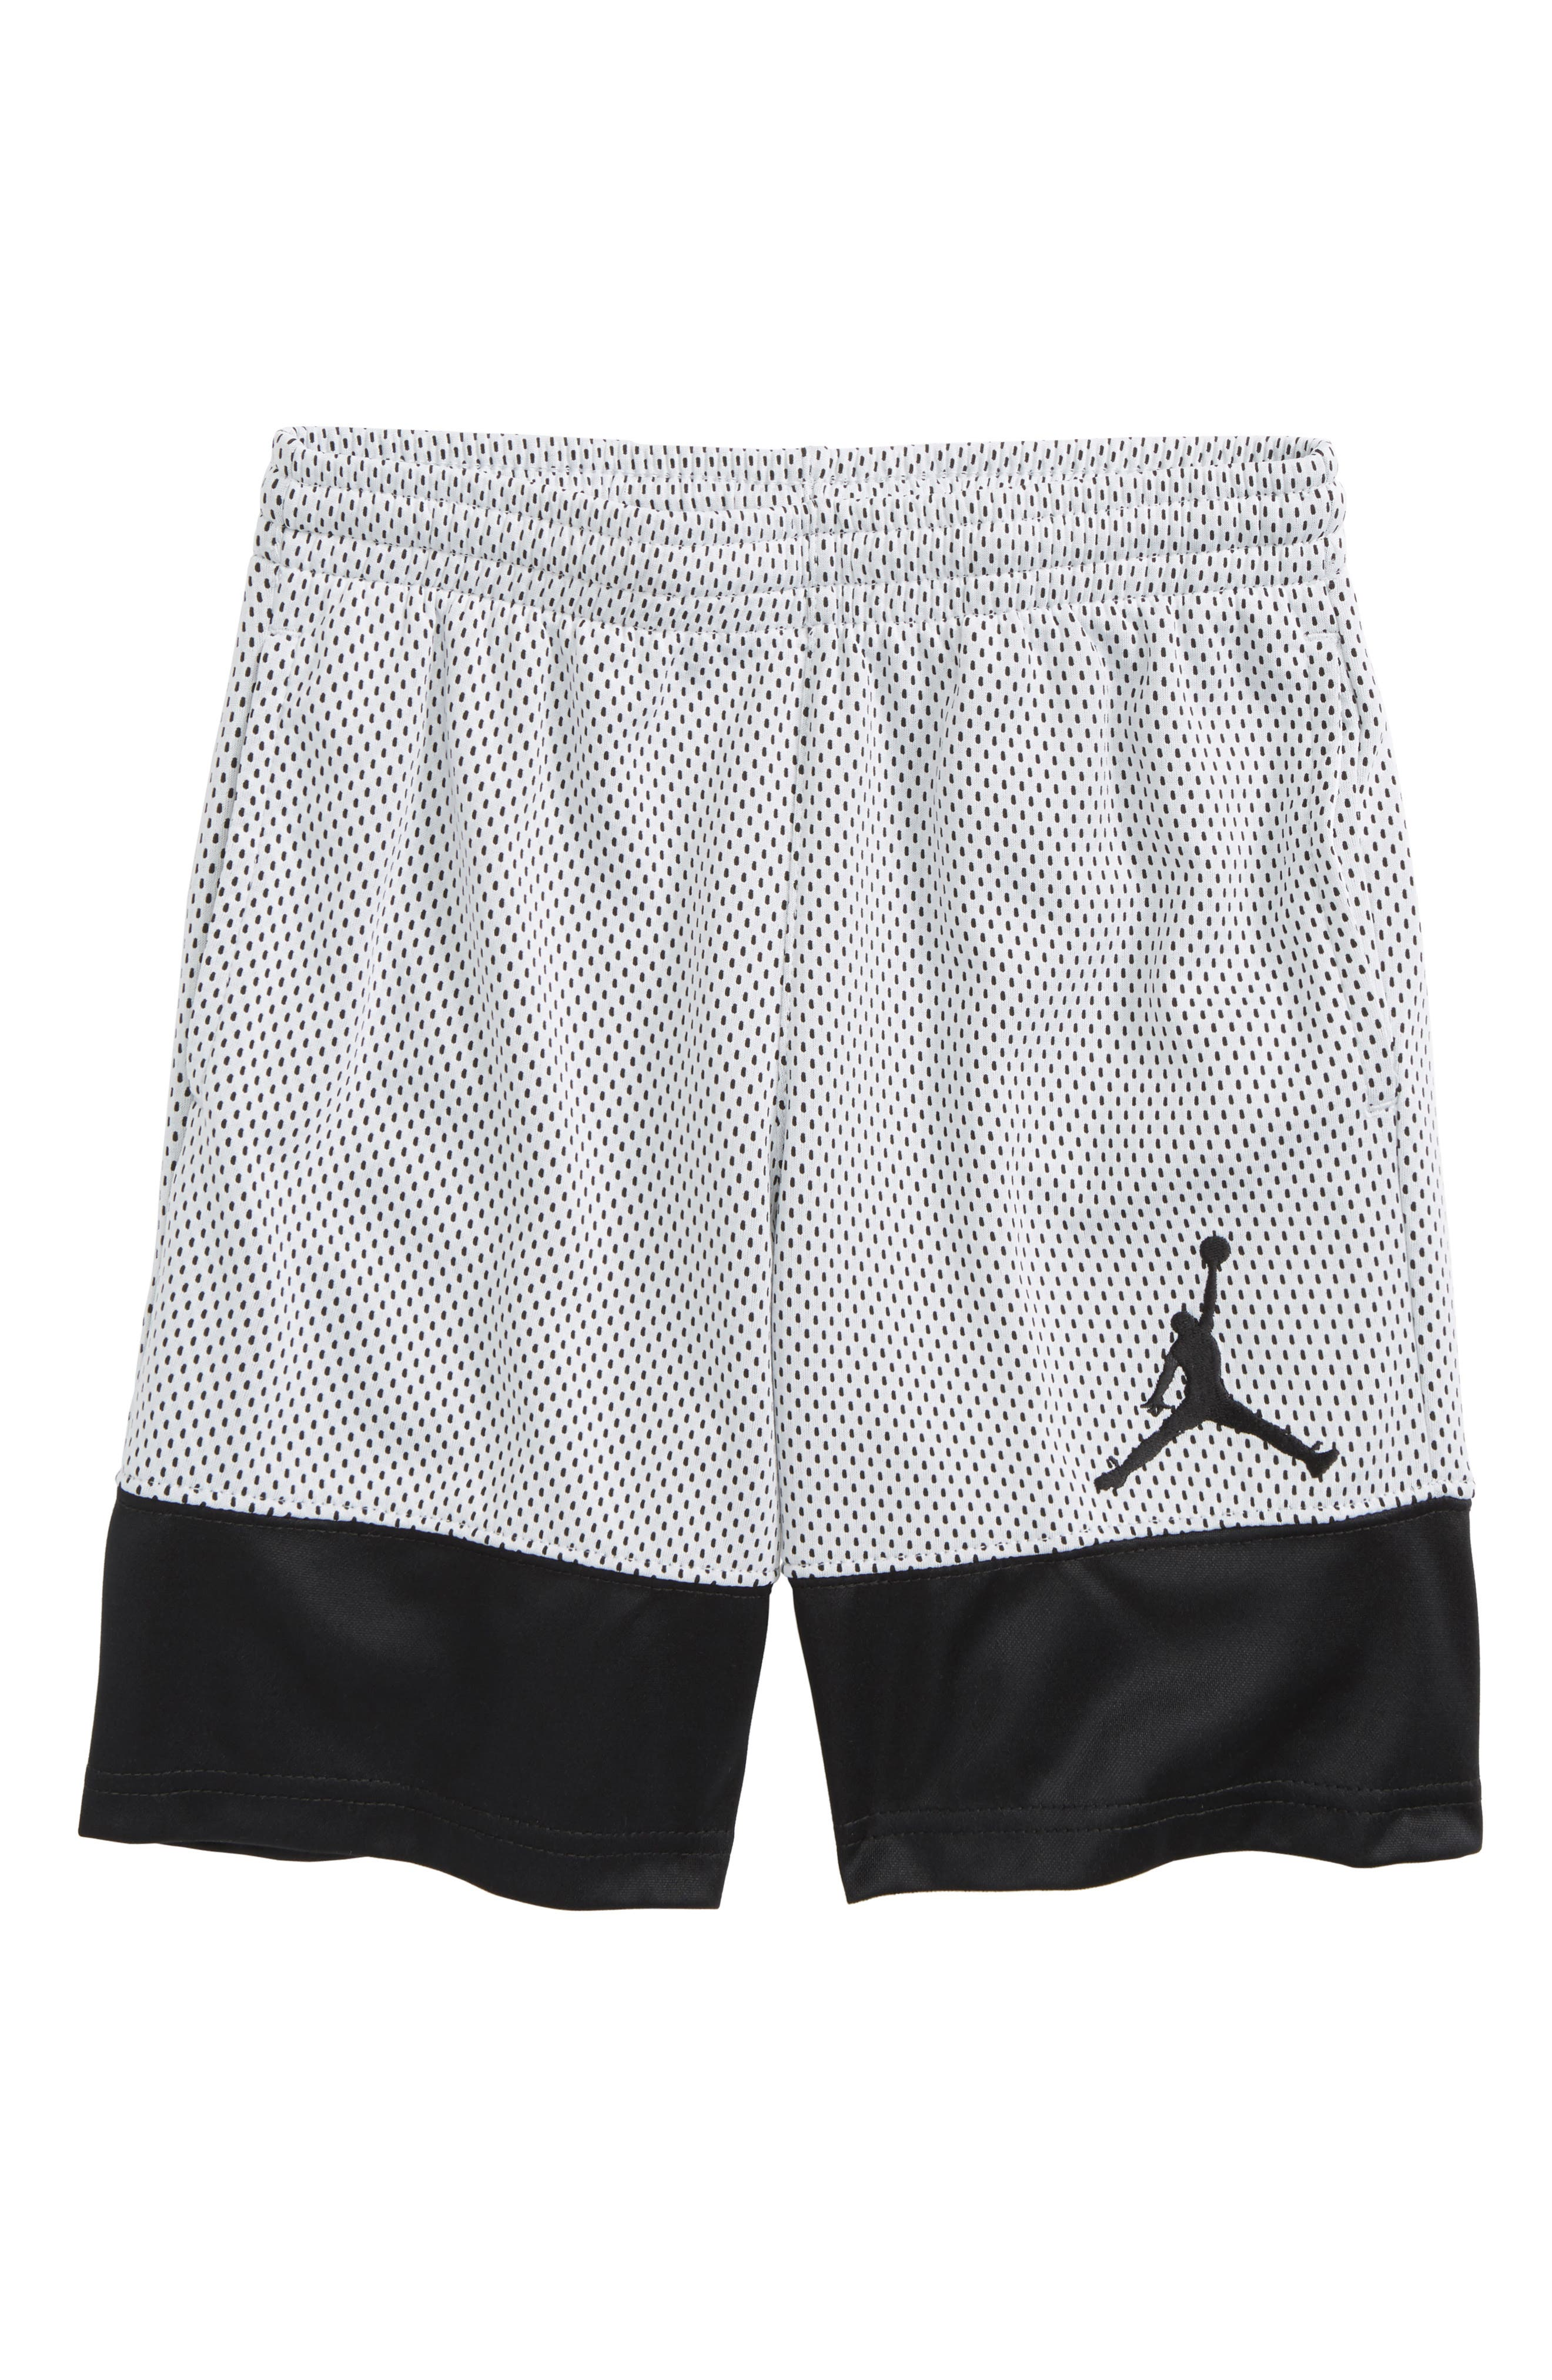 Jordan '90s Mesh Shorts,                             Main thumbnail 1, color,                             Black/ White